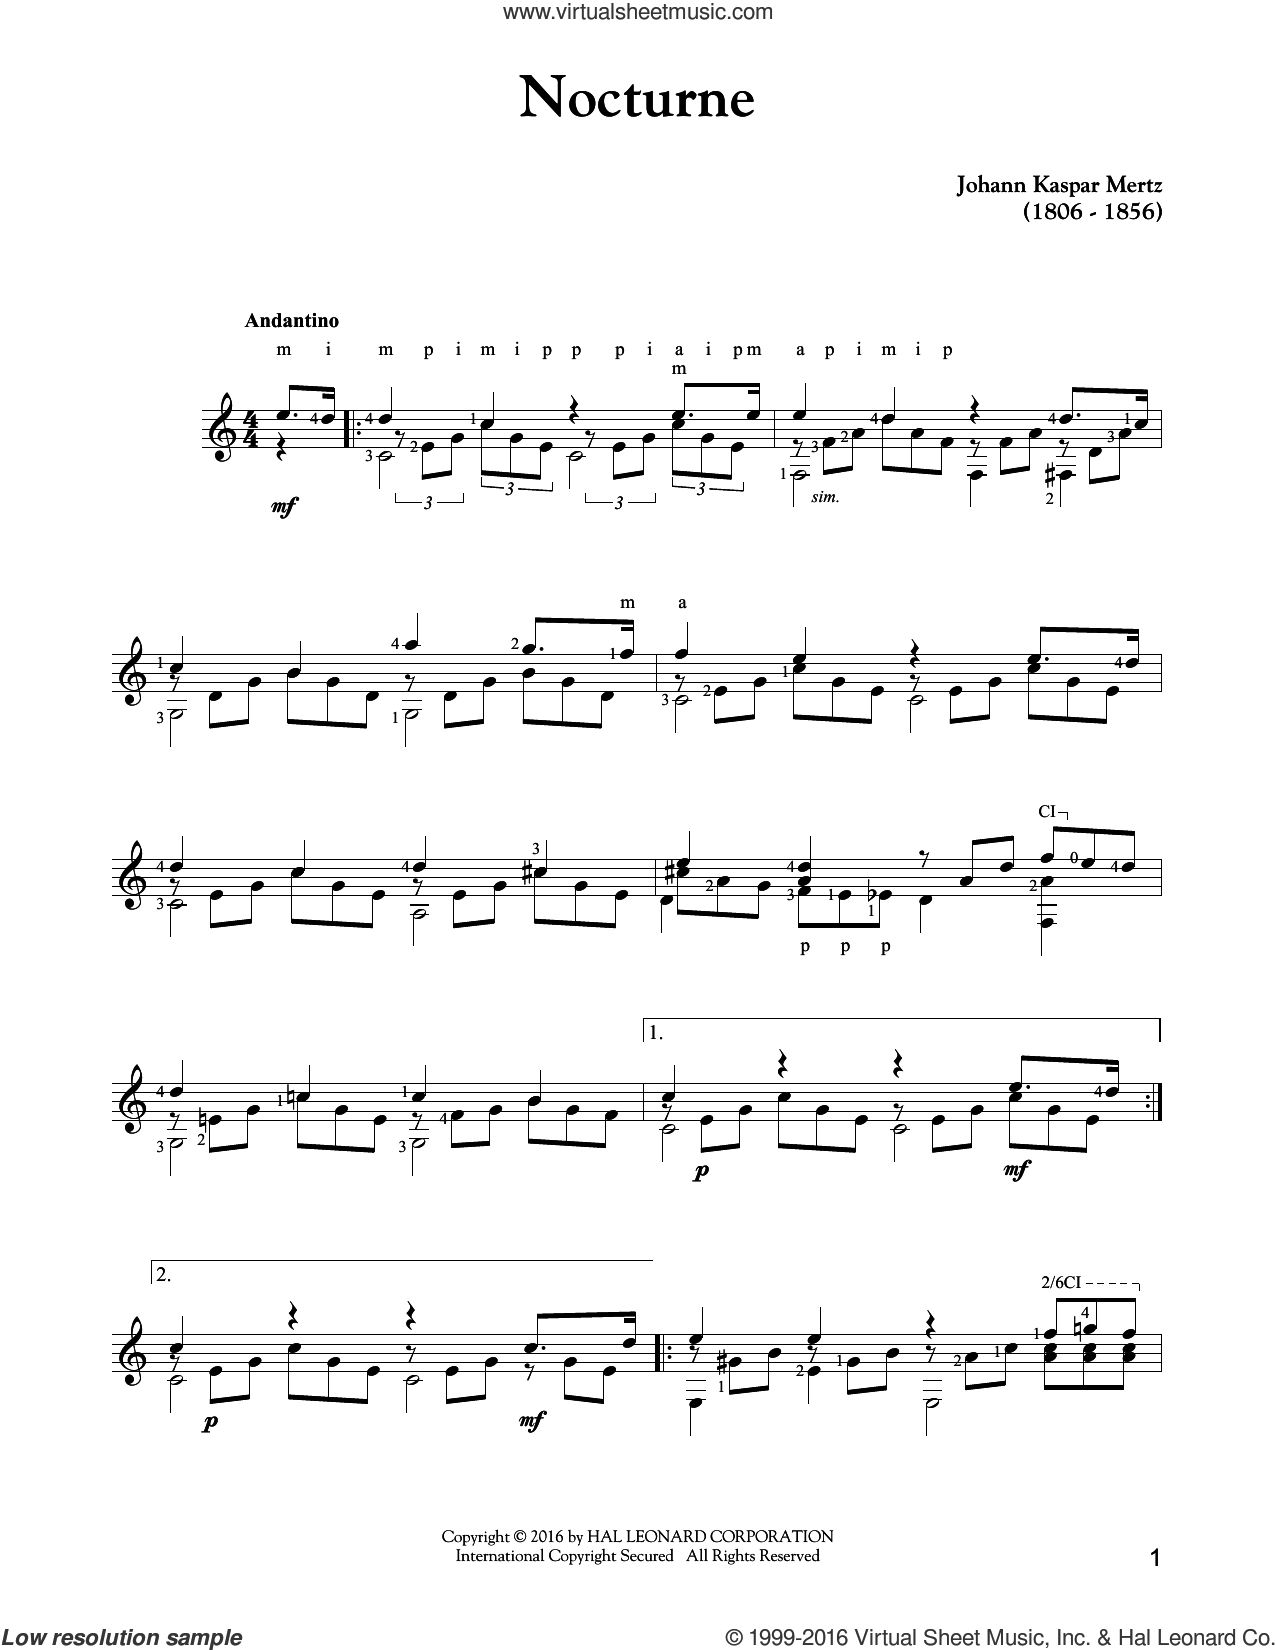 Nocturne sheet music for guitar solo by Johann Kaspar Mertz